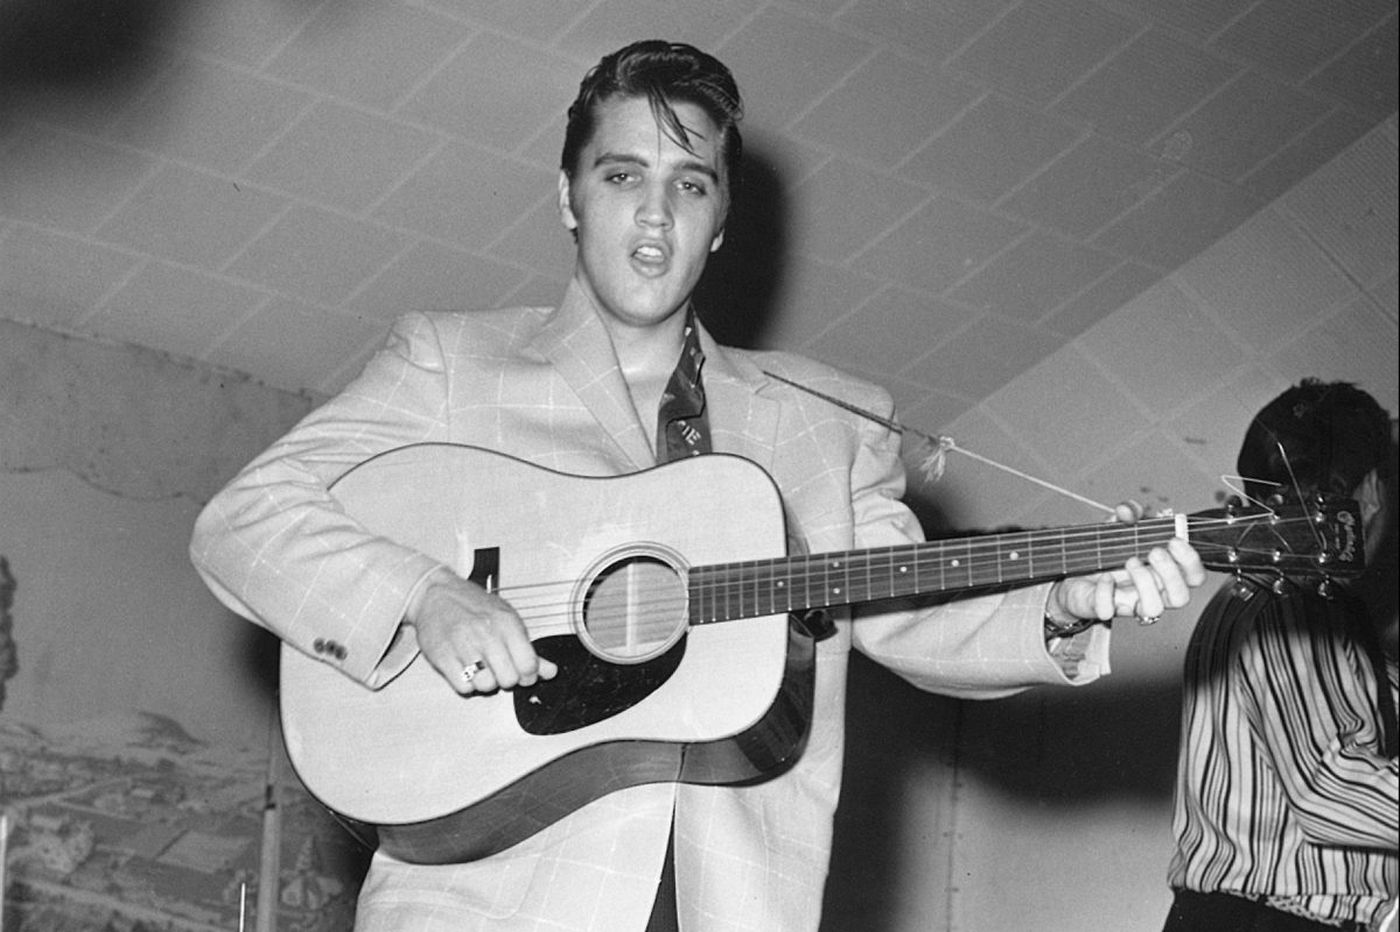 Lessons from Elvis on inspiring today's young people